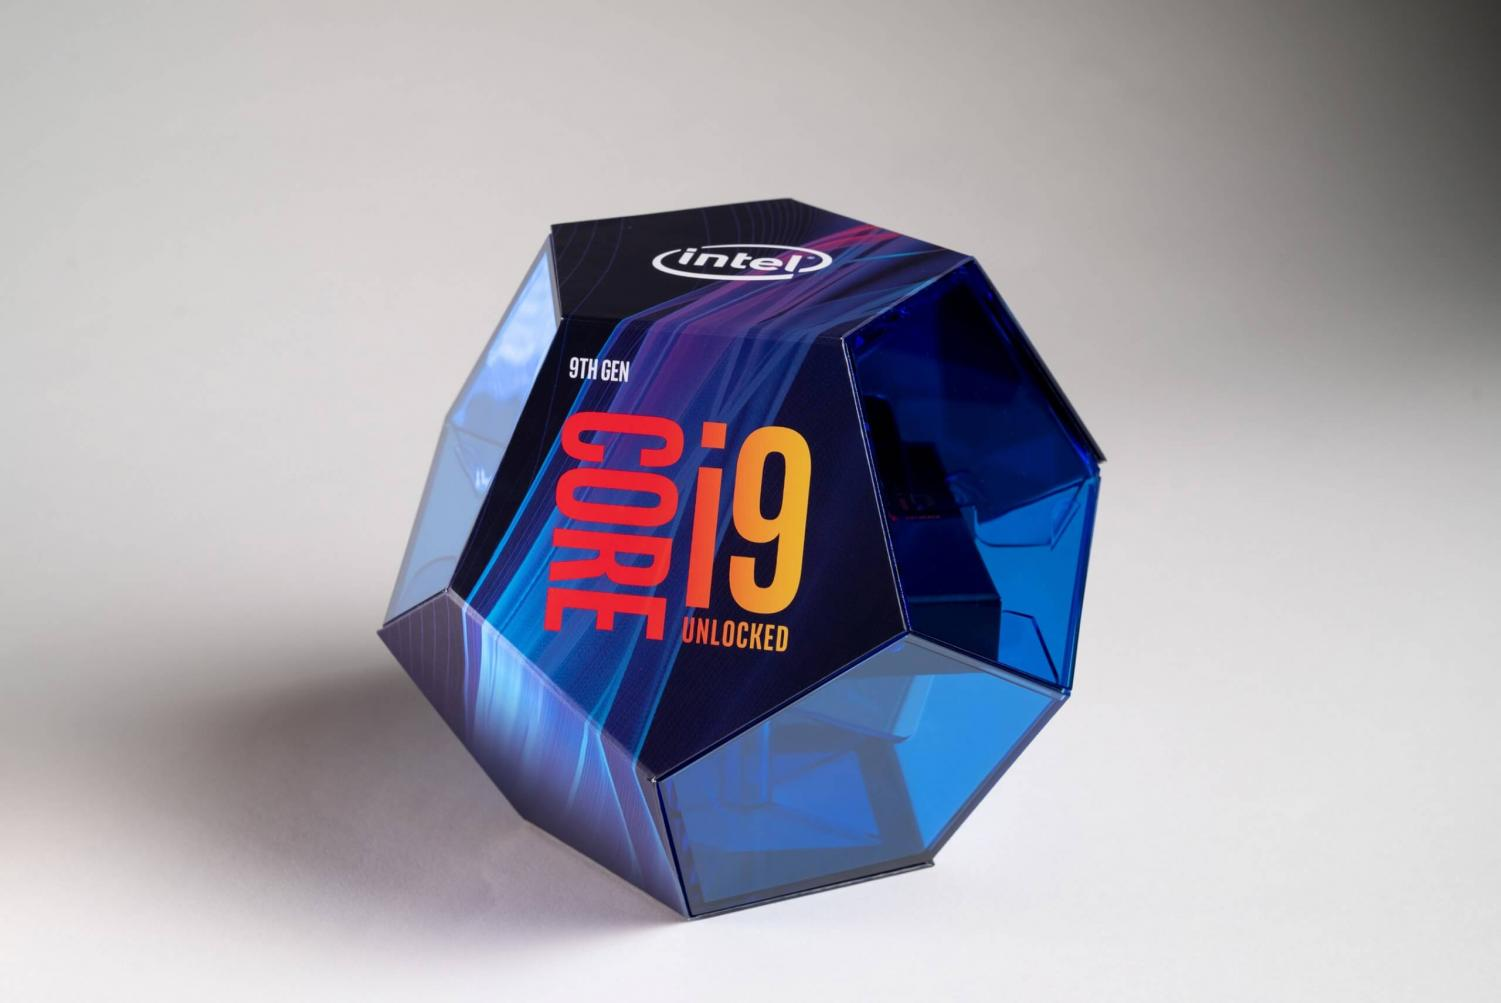 The i9 sits in its pentagonal prism packaging. Graphic courtesy of Tech Spot.